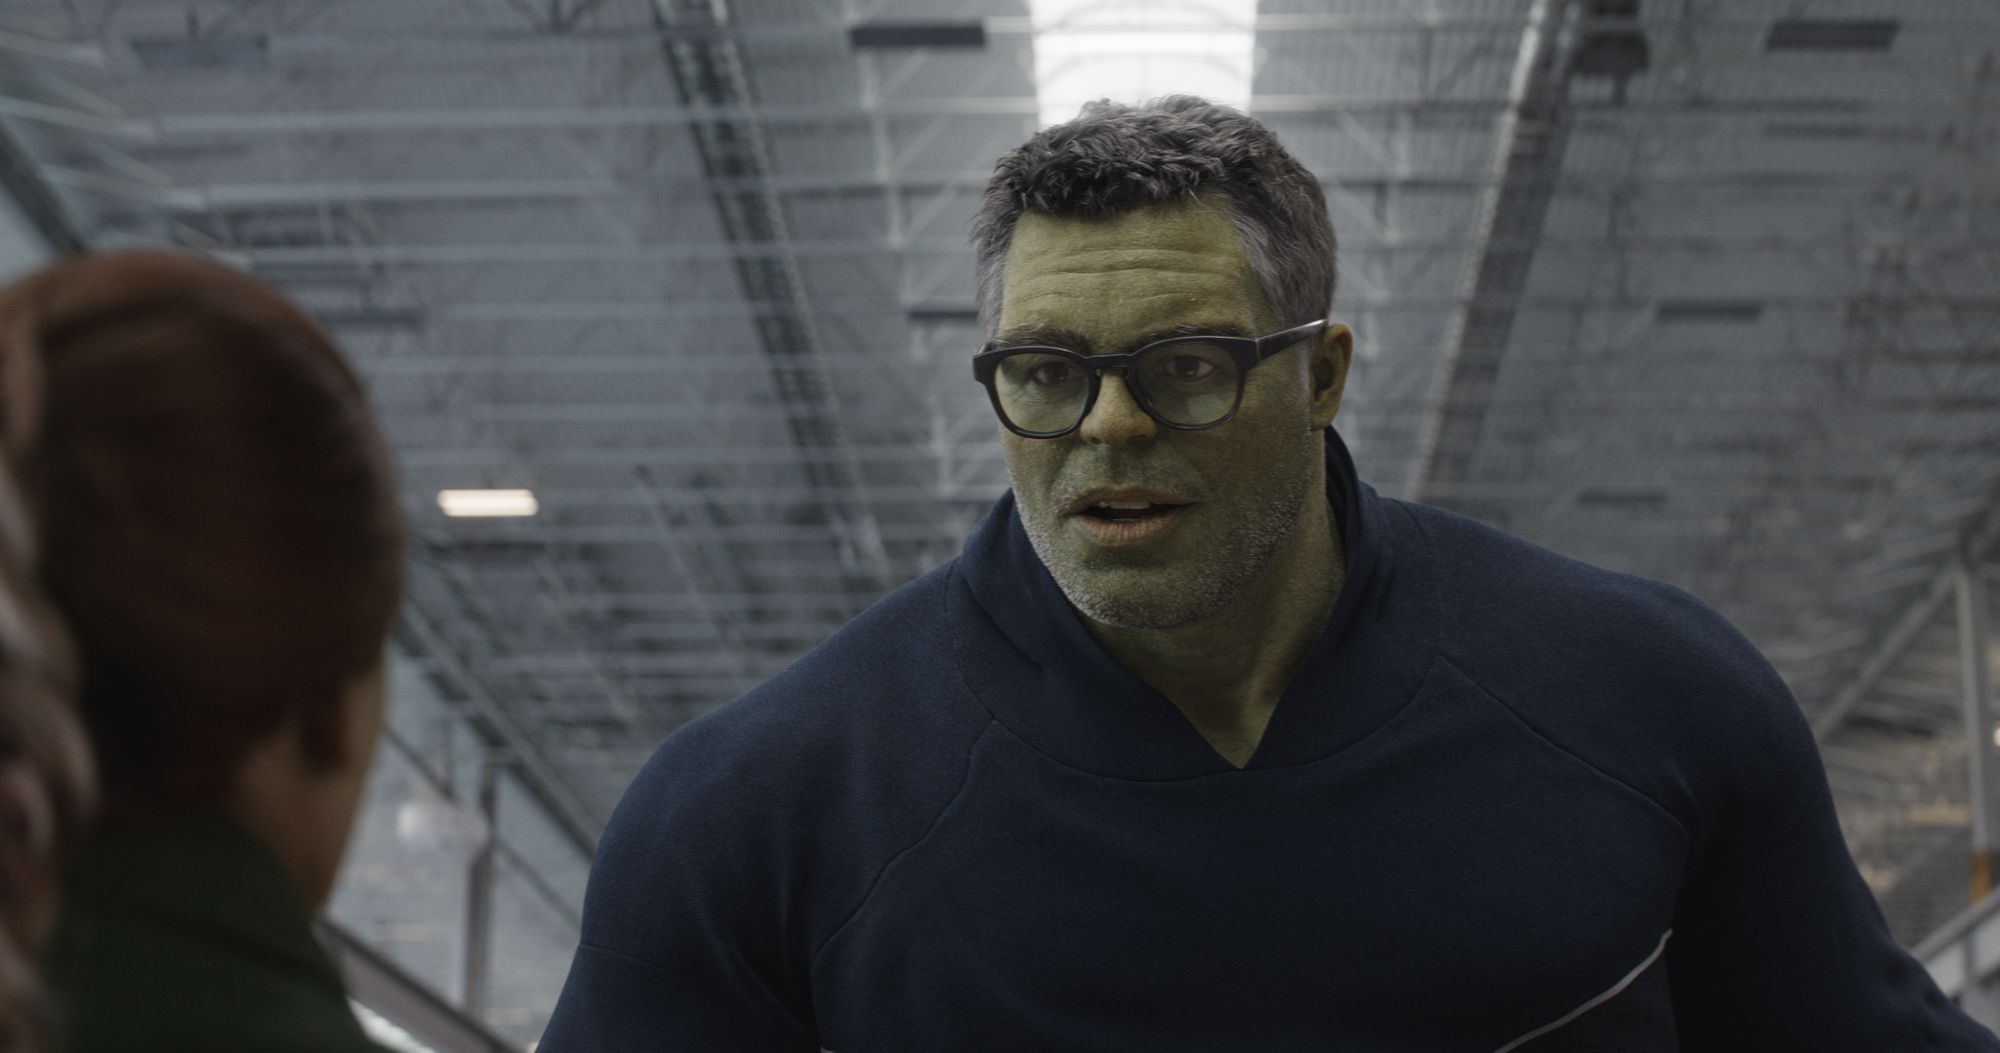 Avengers: Endgame Behind-the-Scenes Images Reveal How Smart Hulk Was Made | Collider